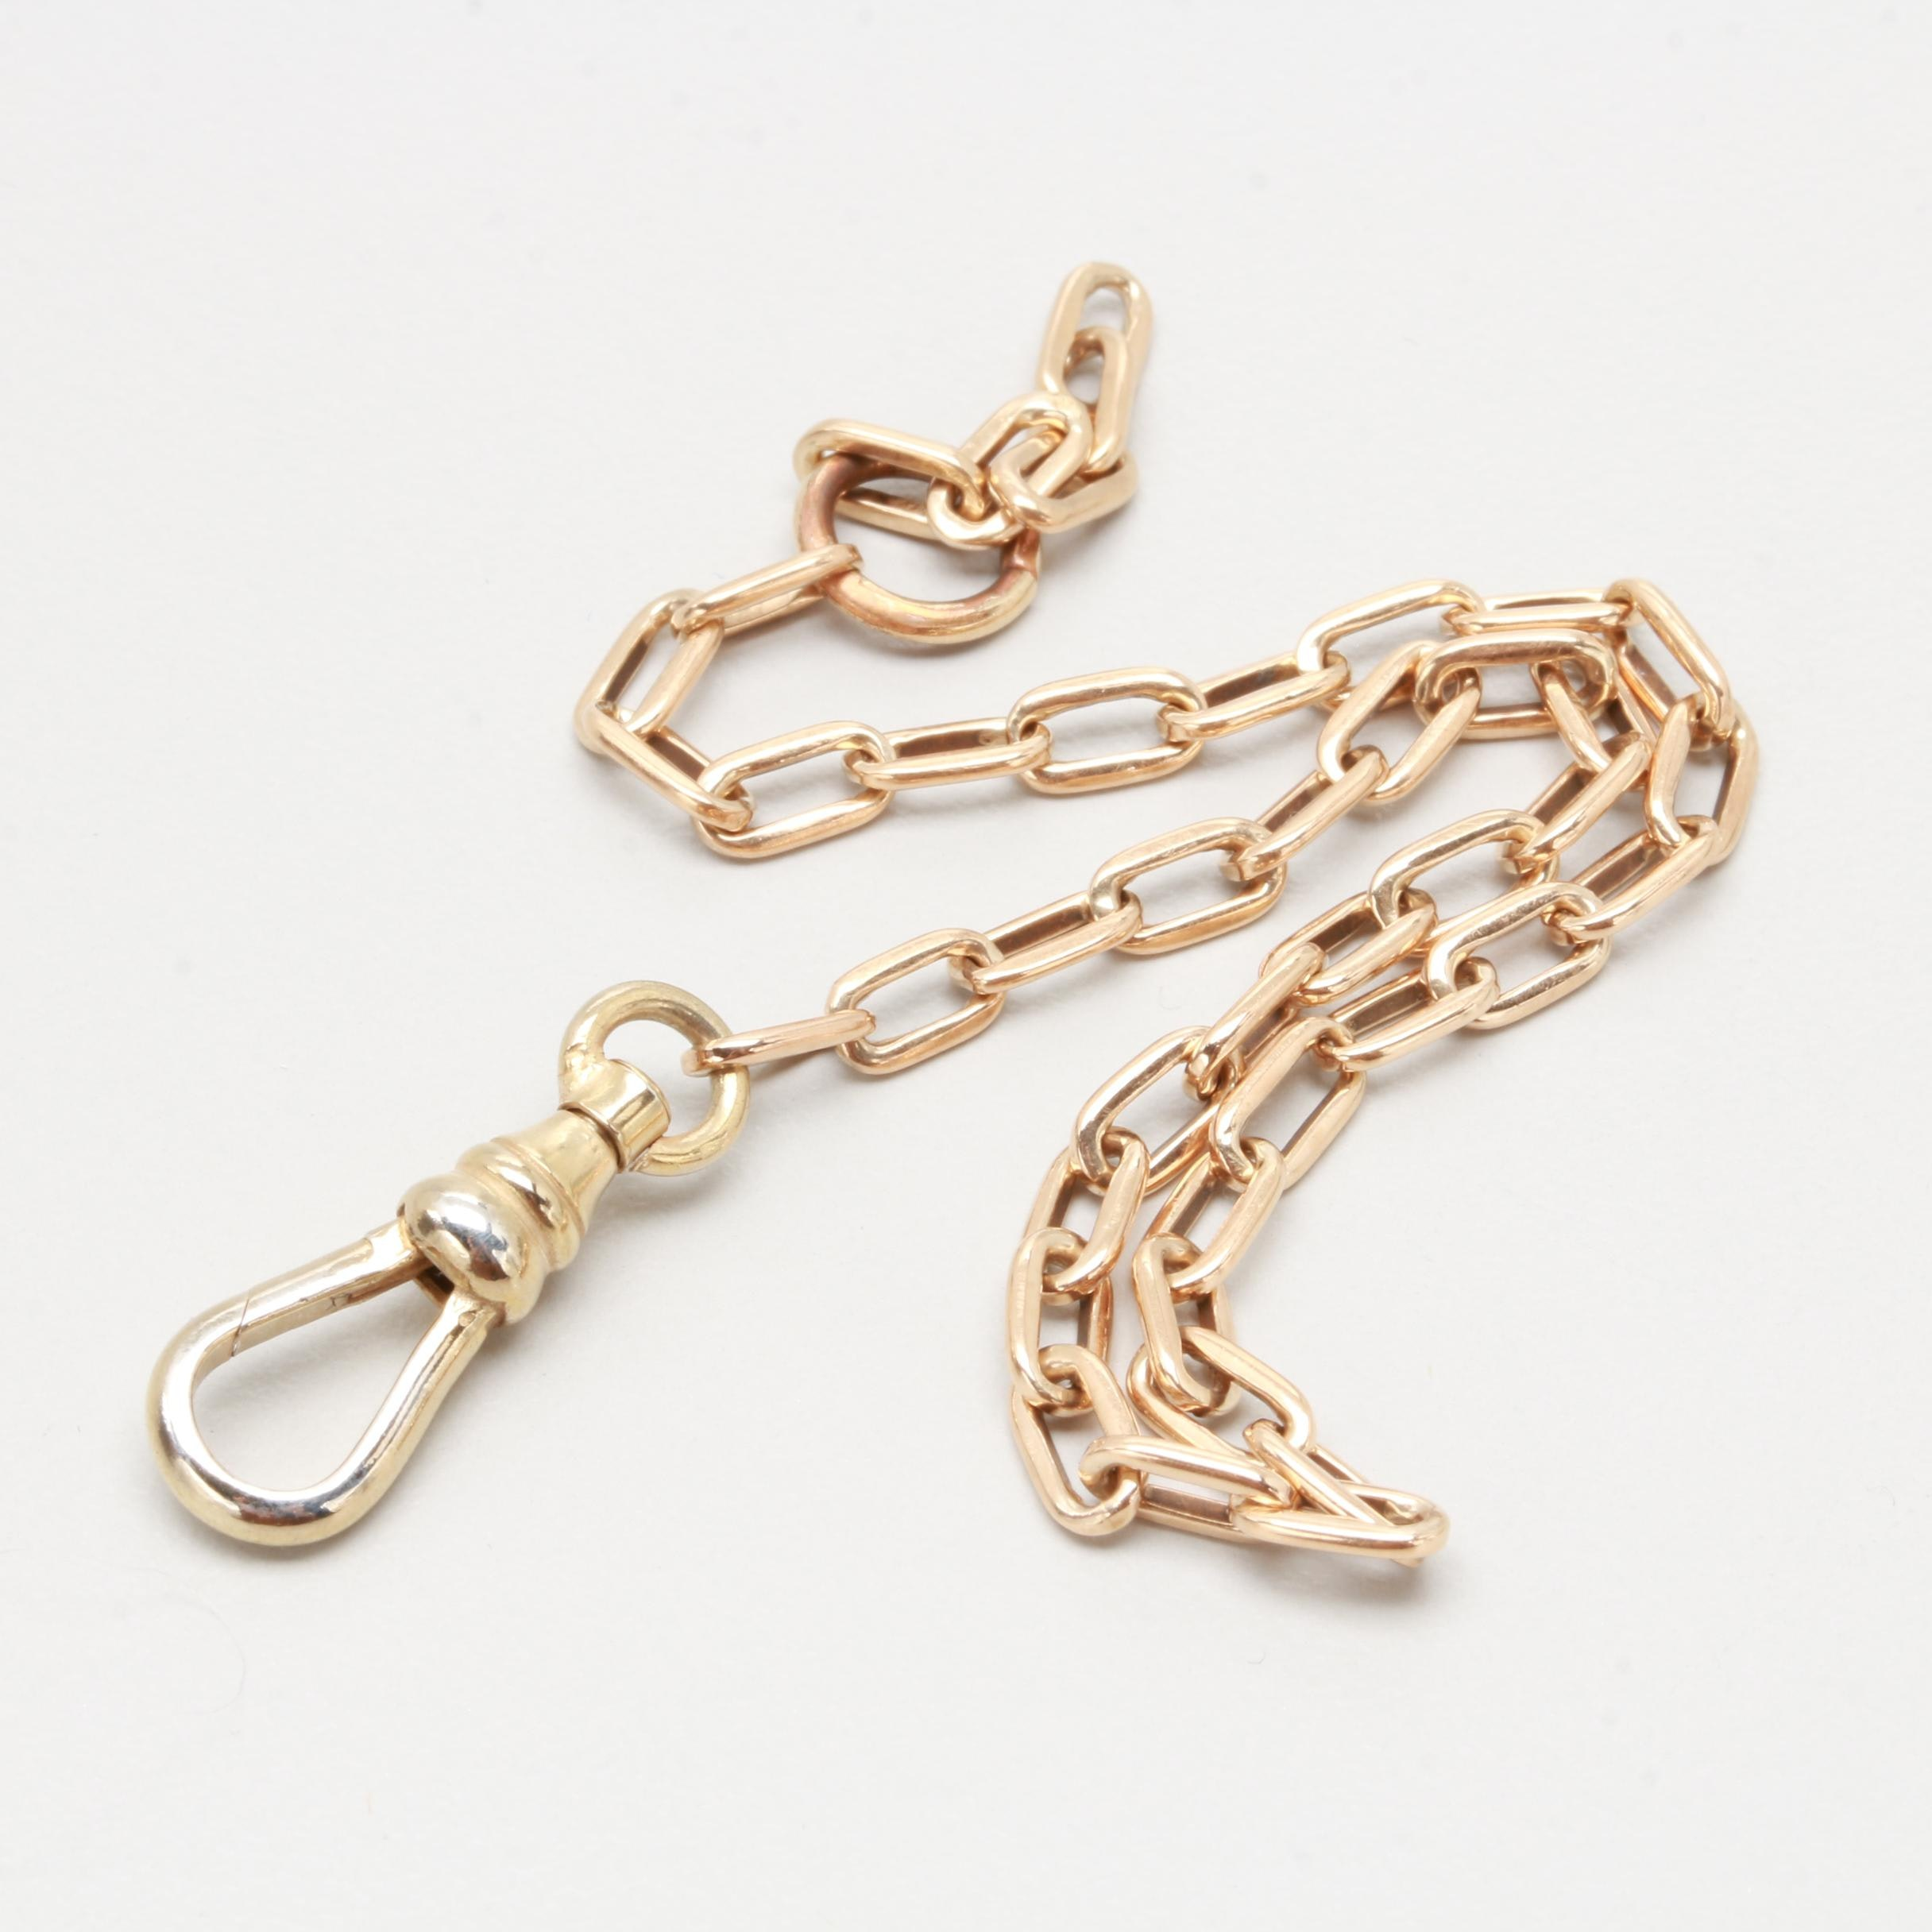 14K Yellow Gold Watch Fob with Gold Tone Findings